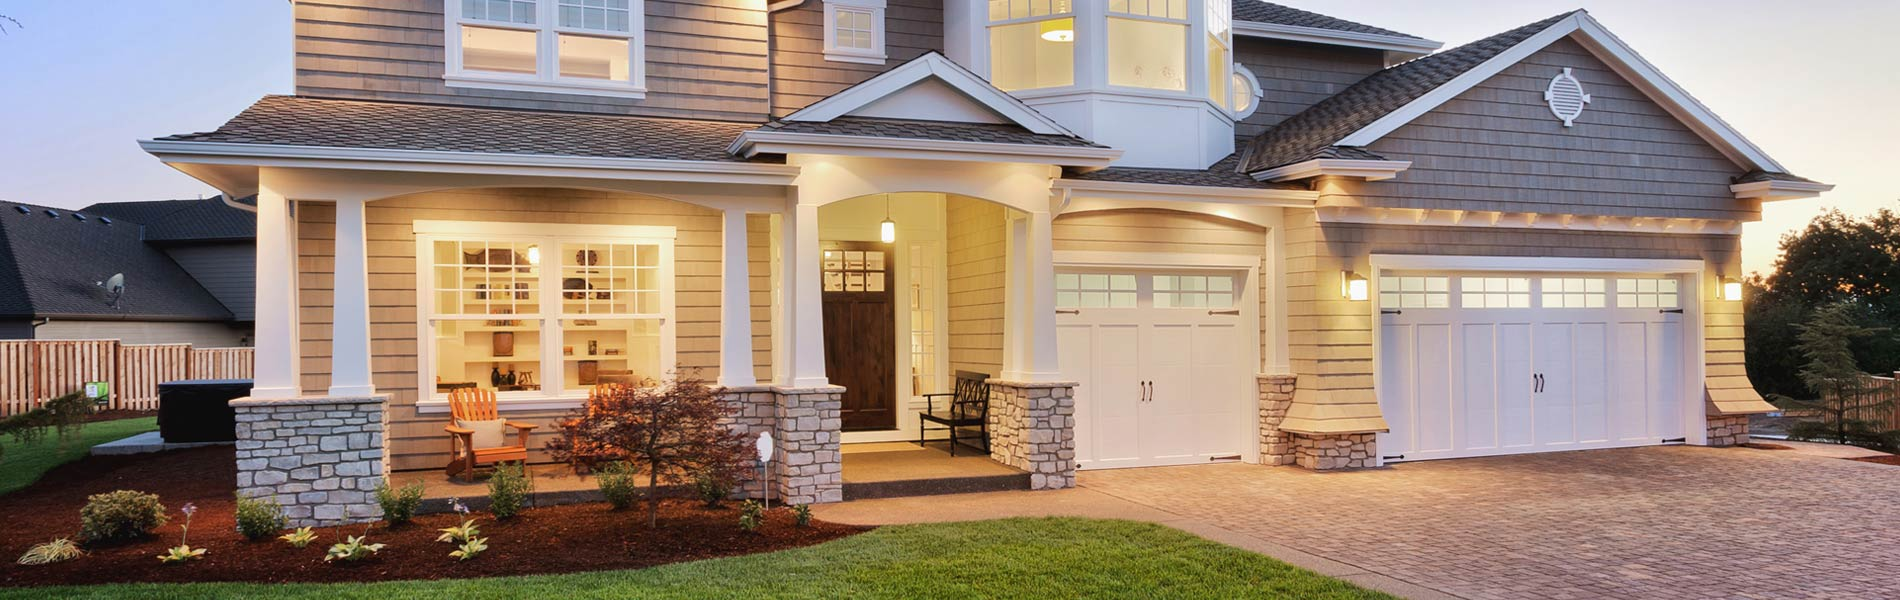 Garage Door Shop Repairs Reston, VA 571-730-5073